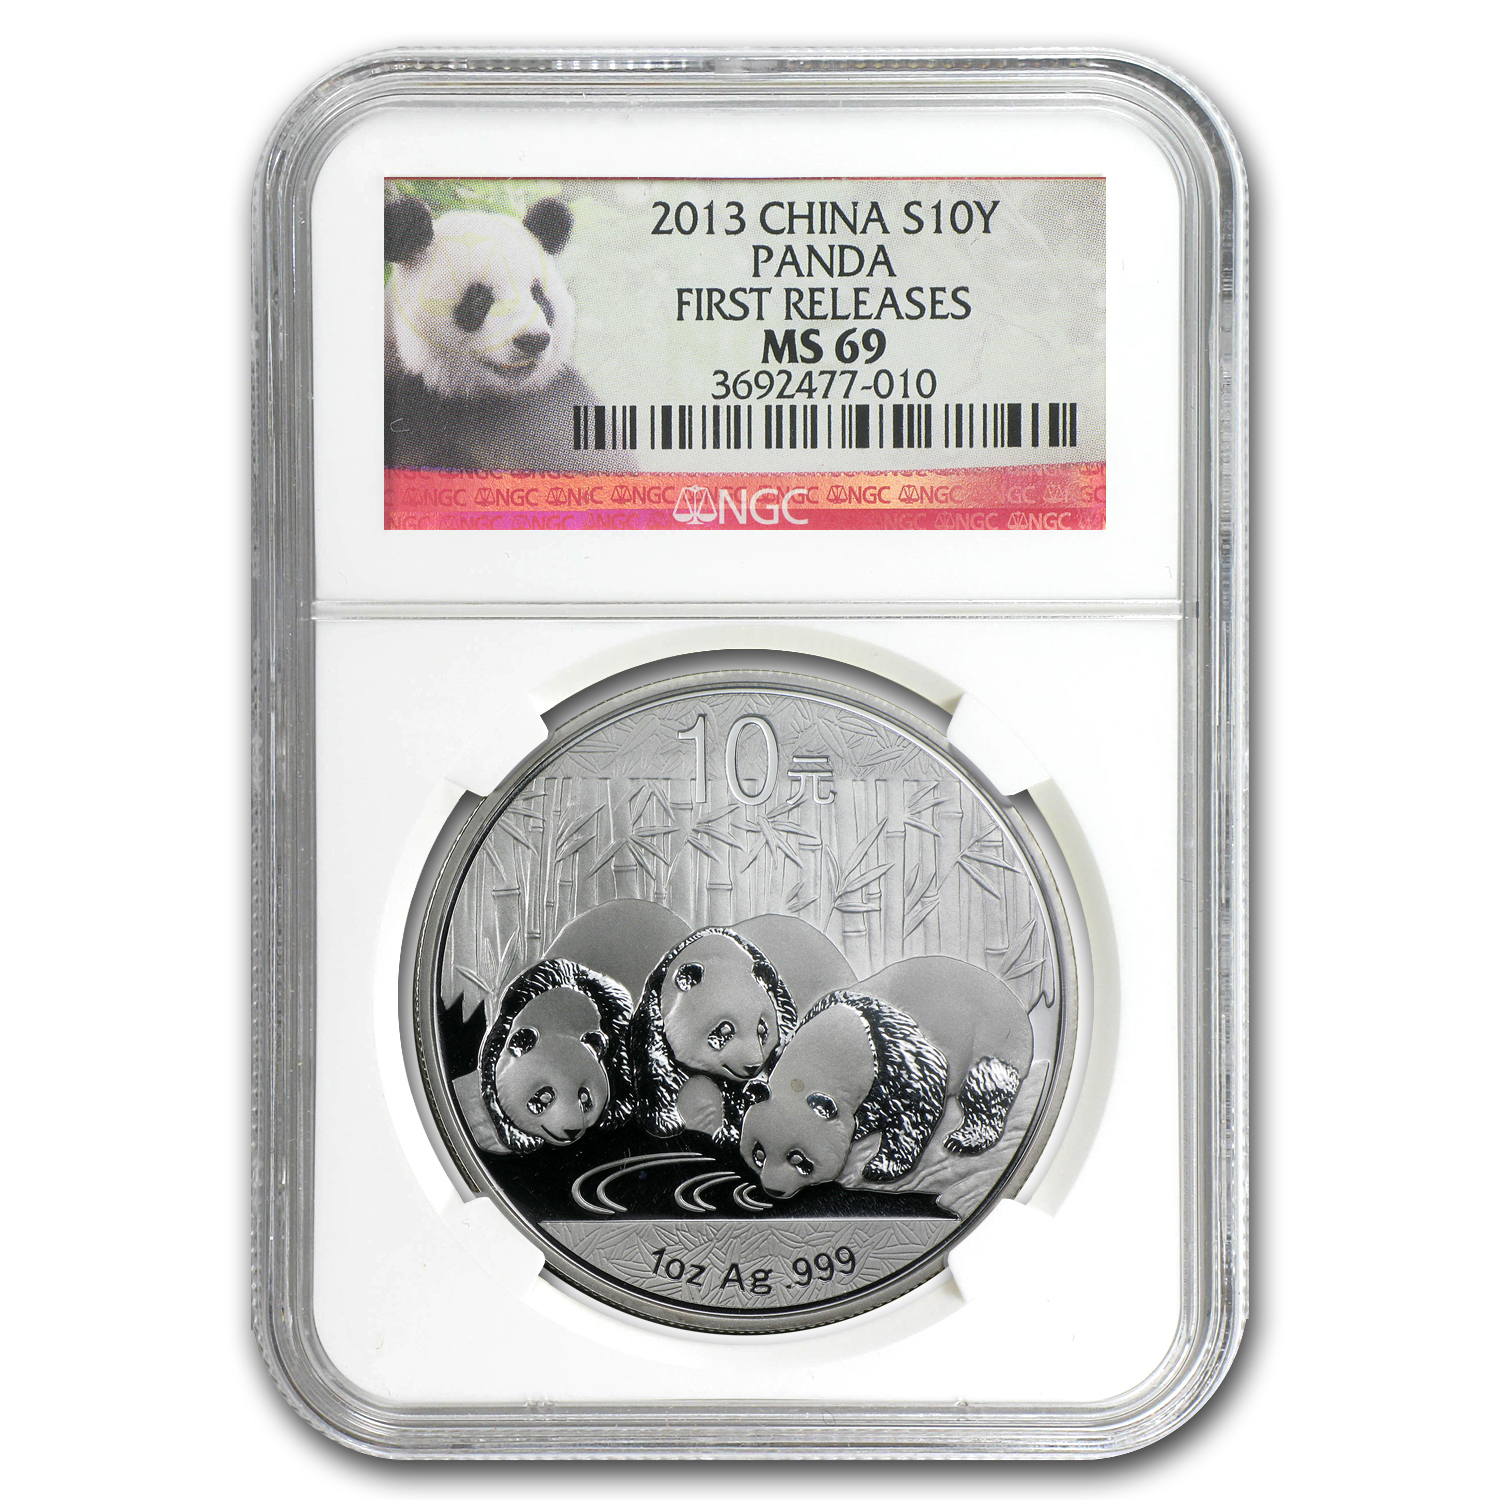 2013 China 1 oz Silver Panda MS-69 NGC (First Releases)